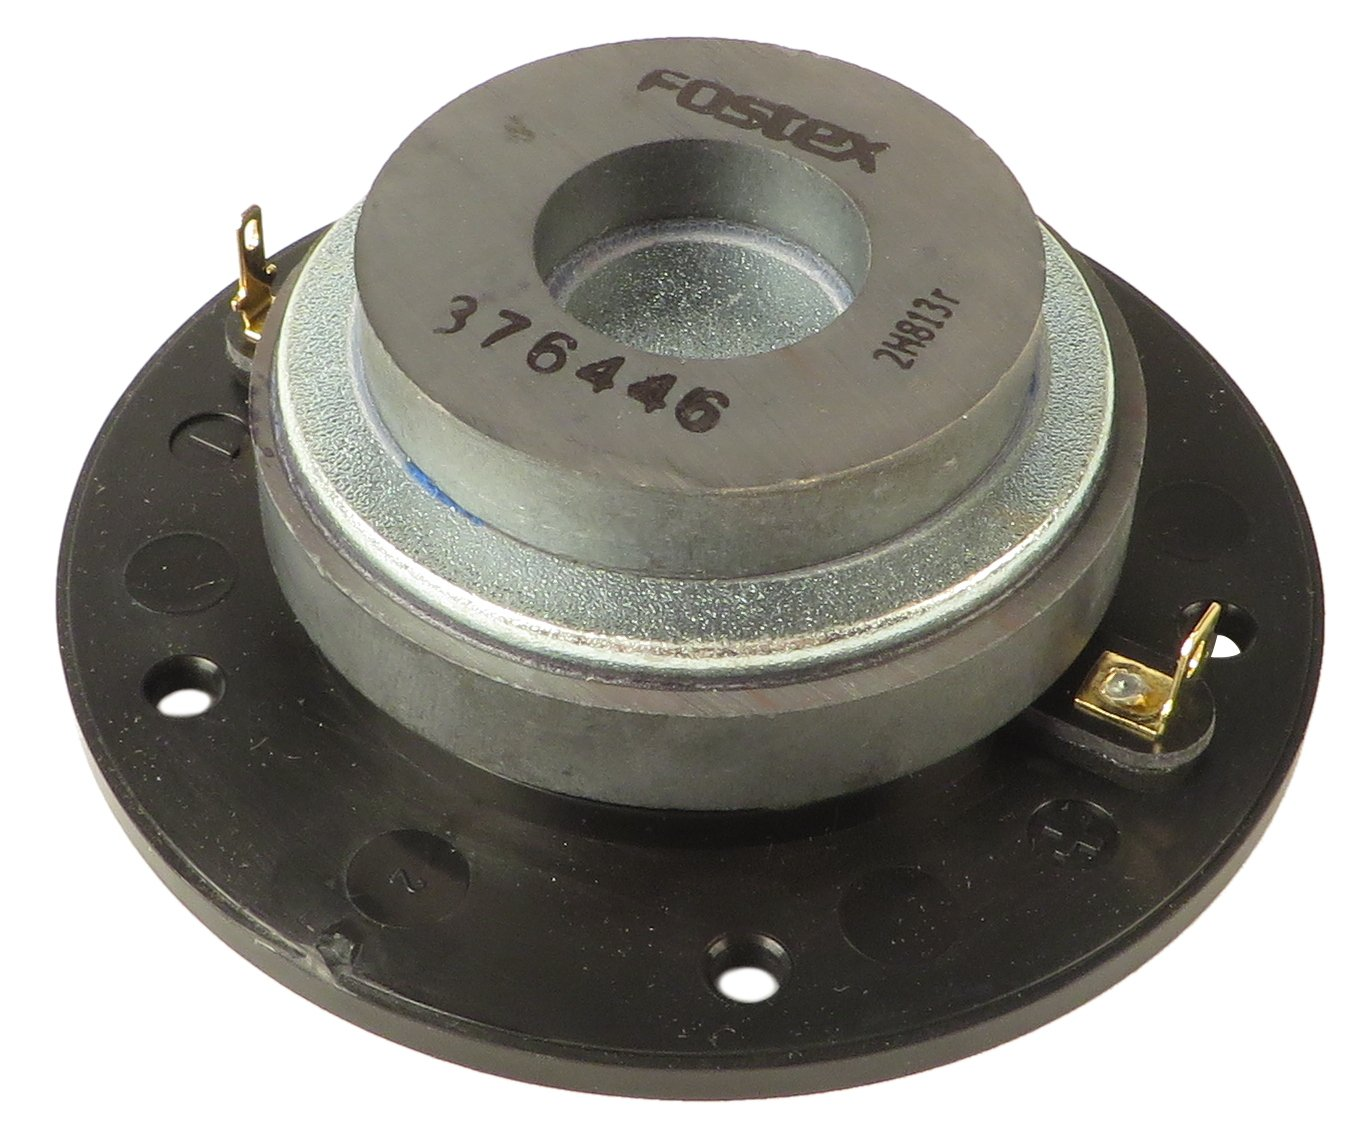 Tweeter for PM0.5 and PM0.5 MKII